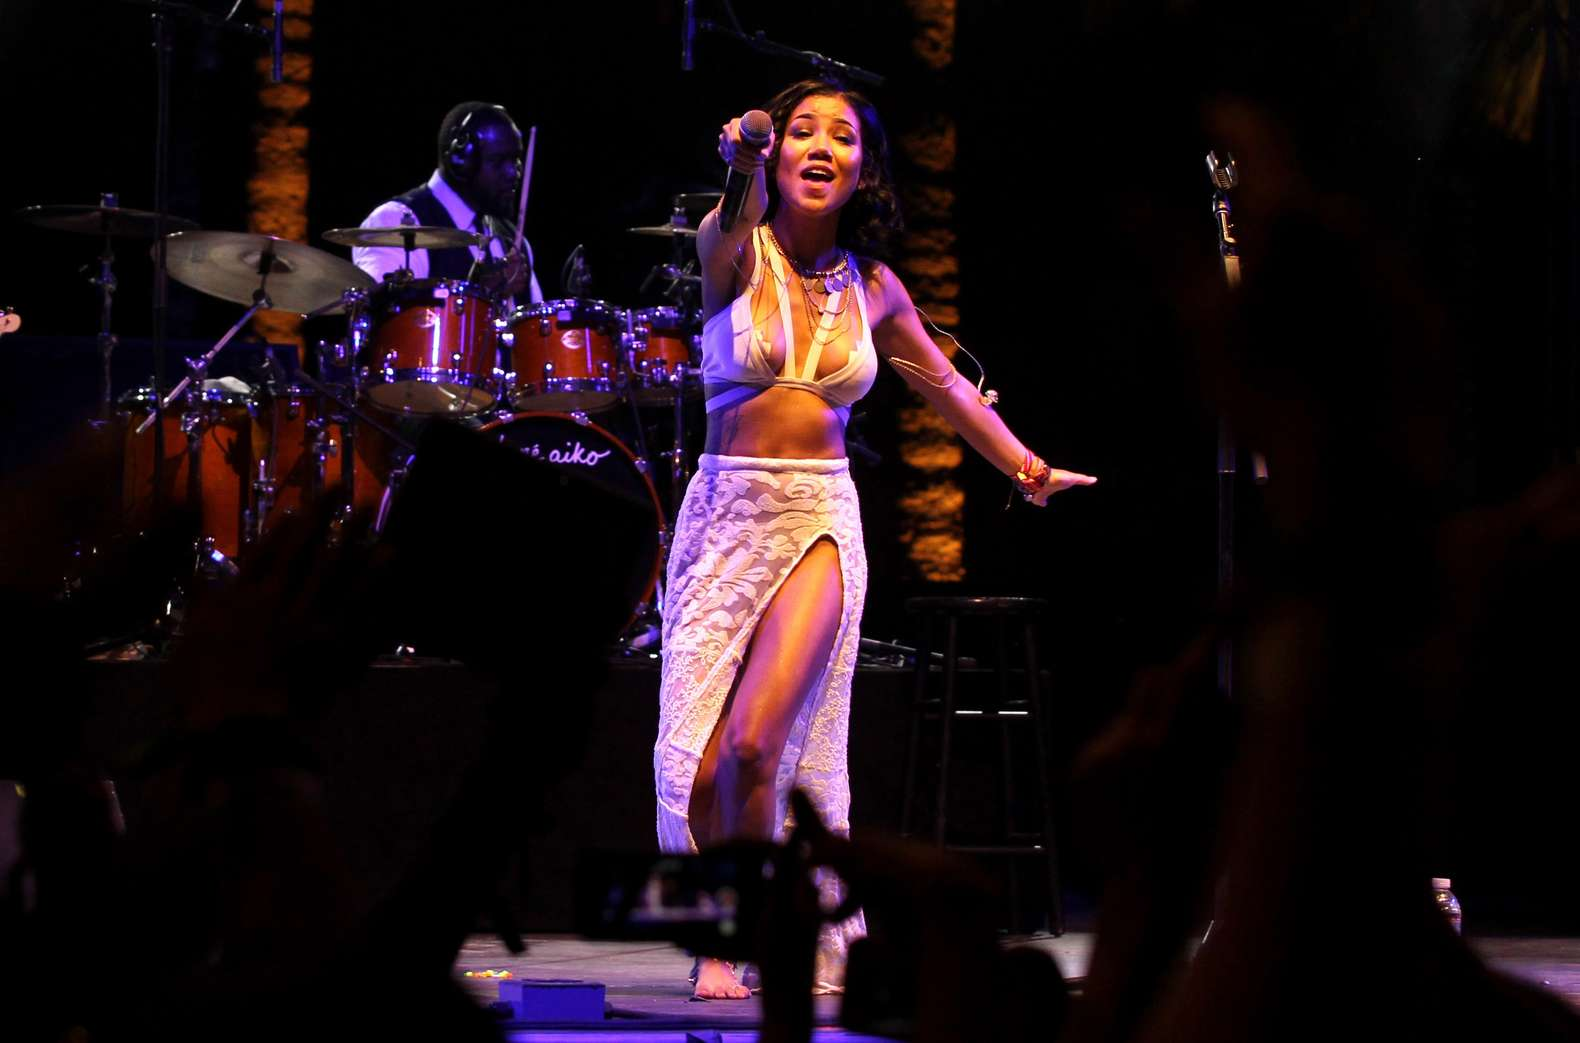 Jhene Aiko Performing at Coachella